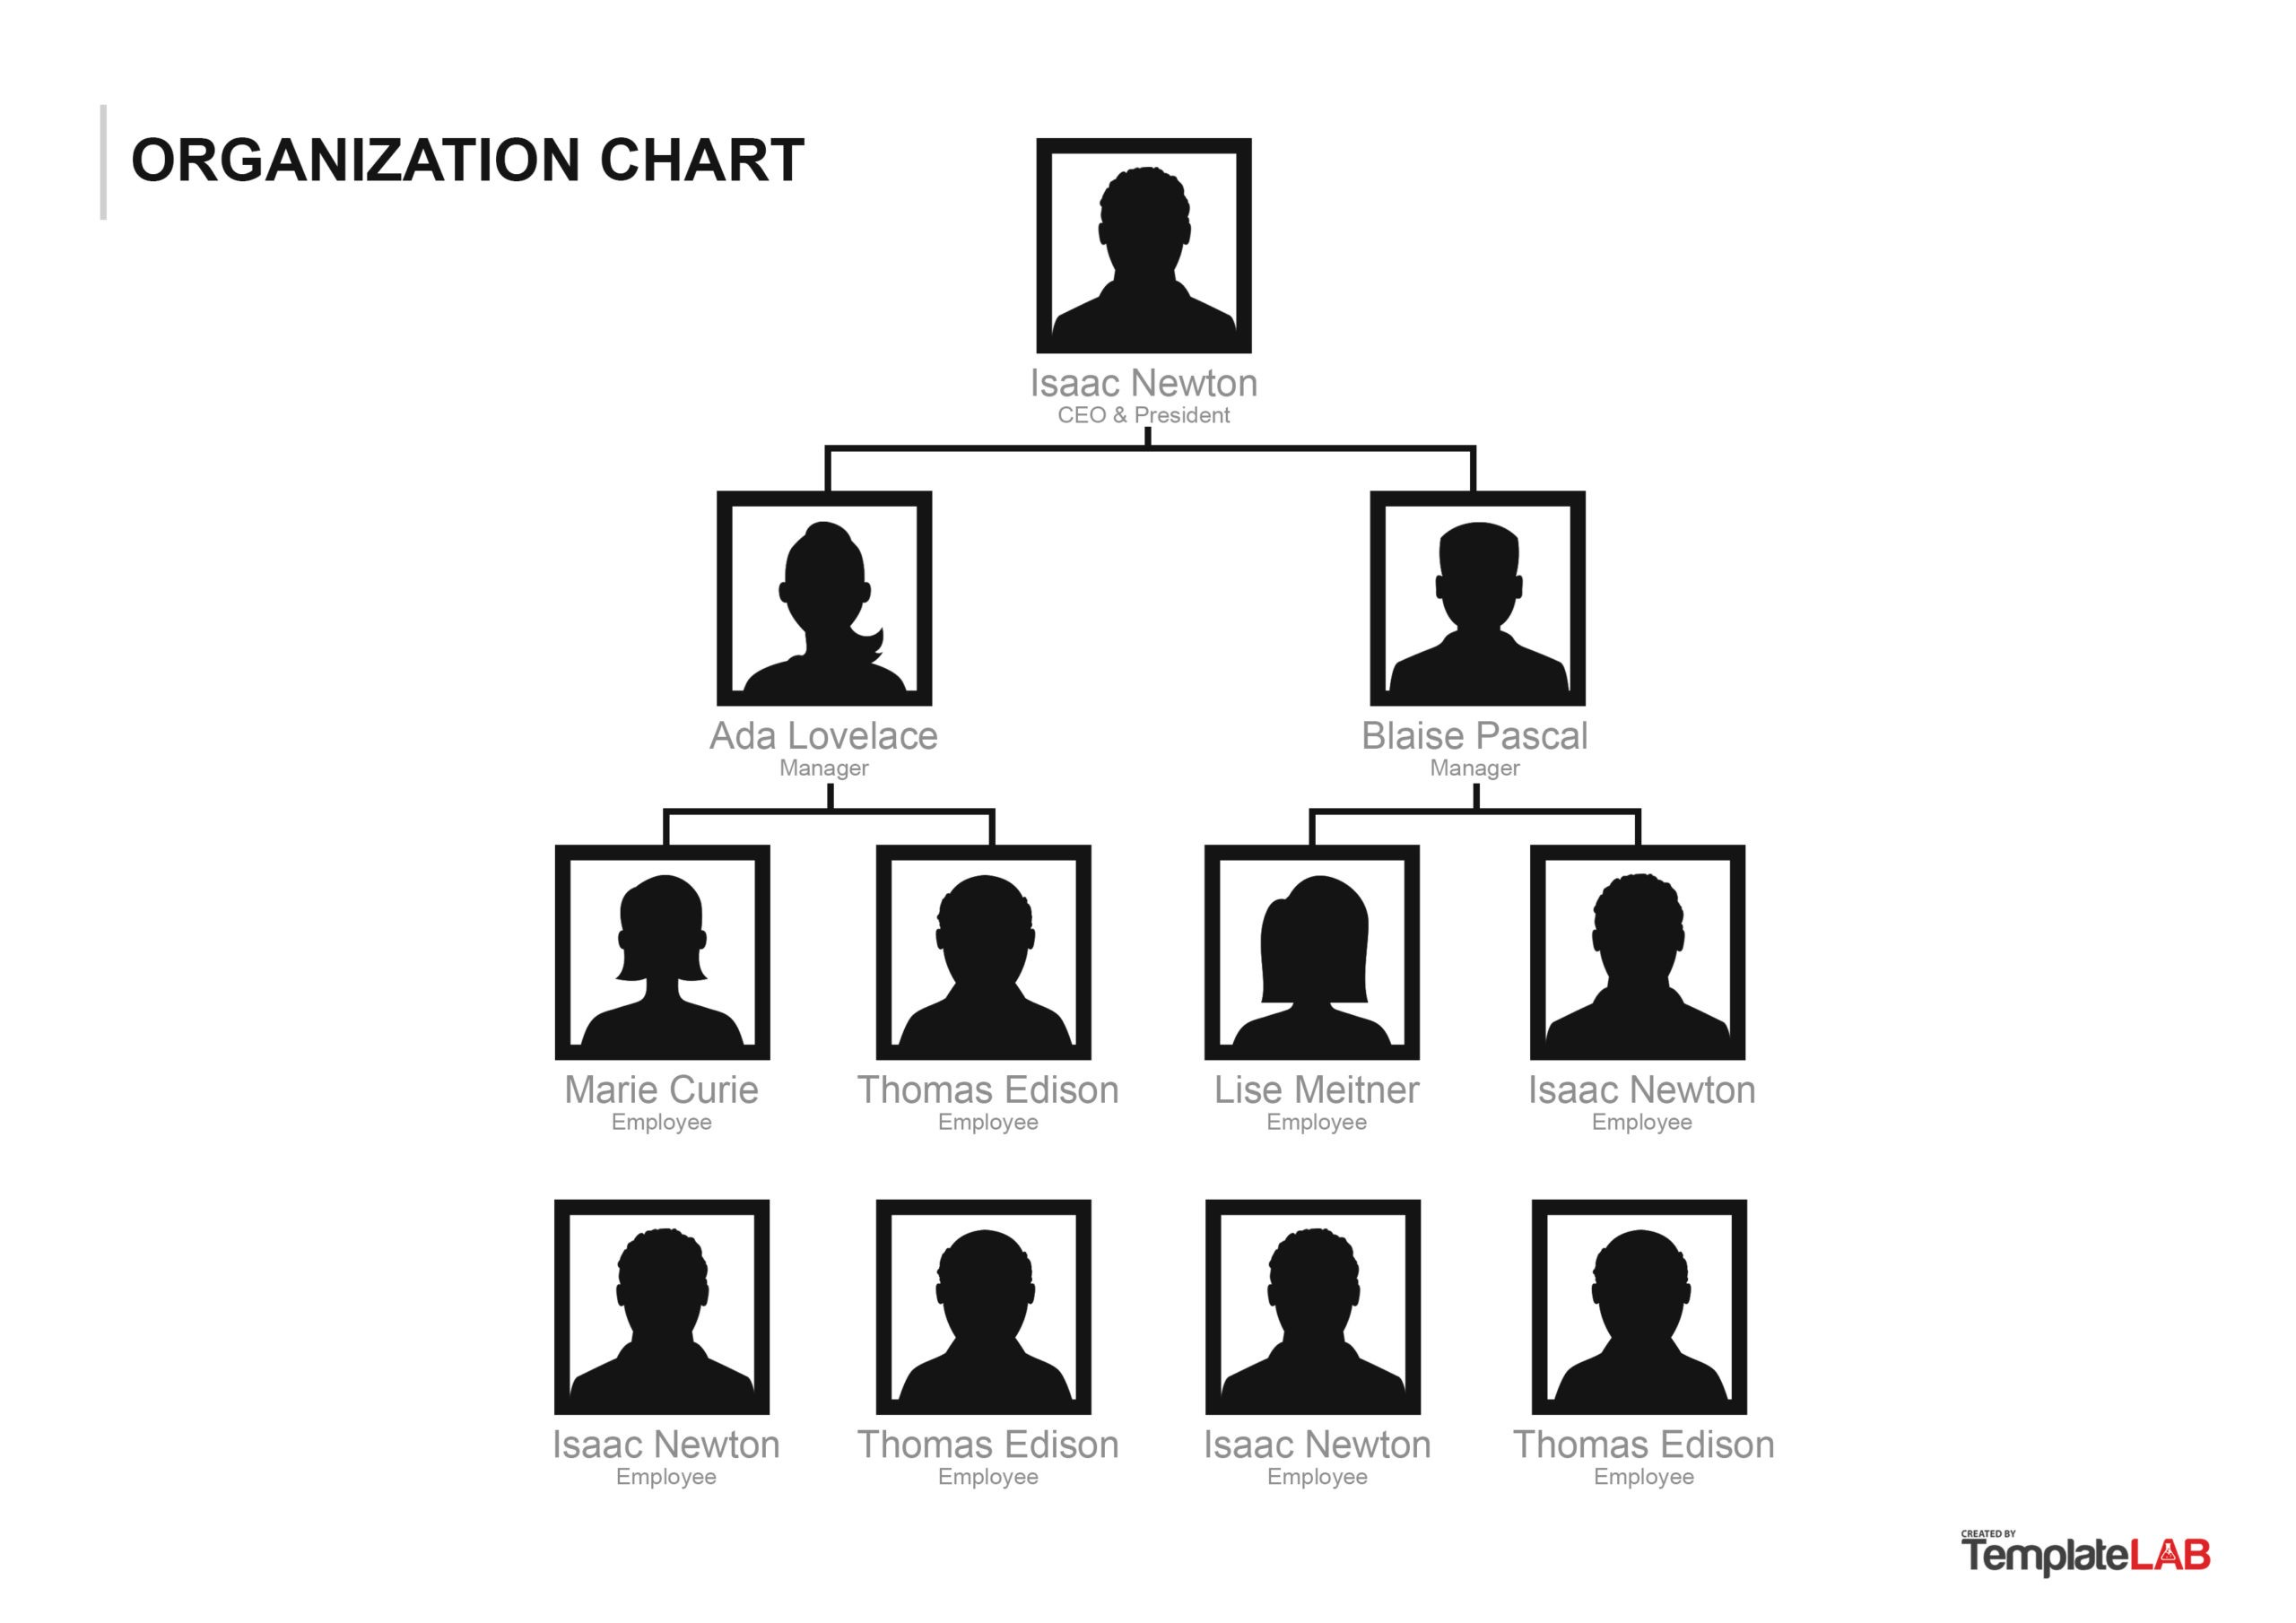 41 Organizational Chart Templates (Word, Excel, PowerPoint